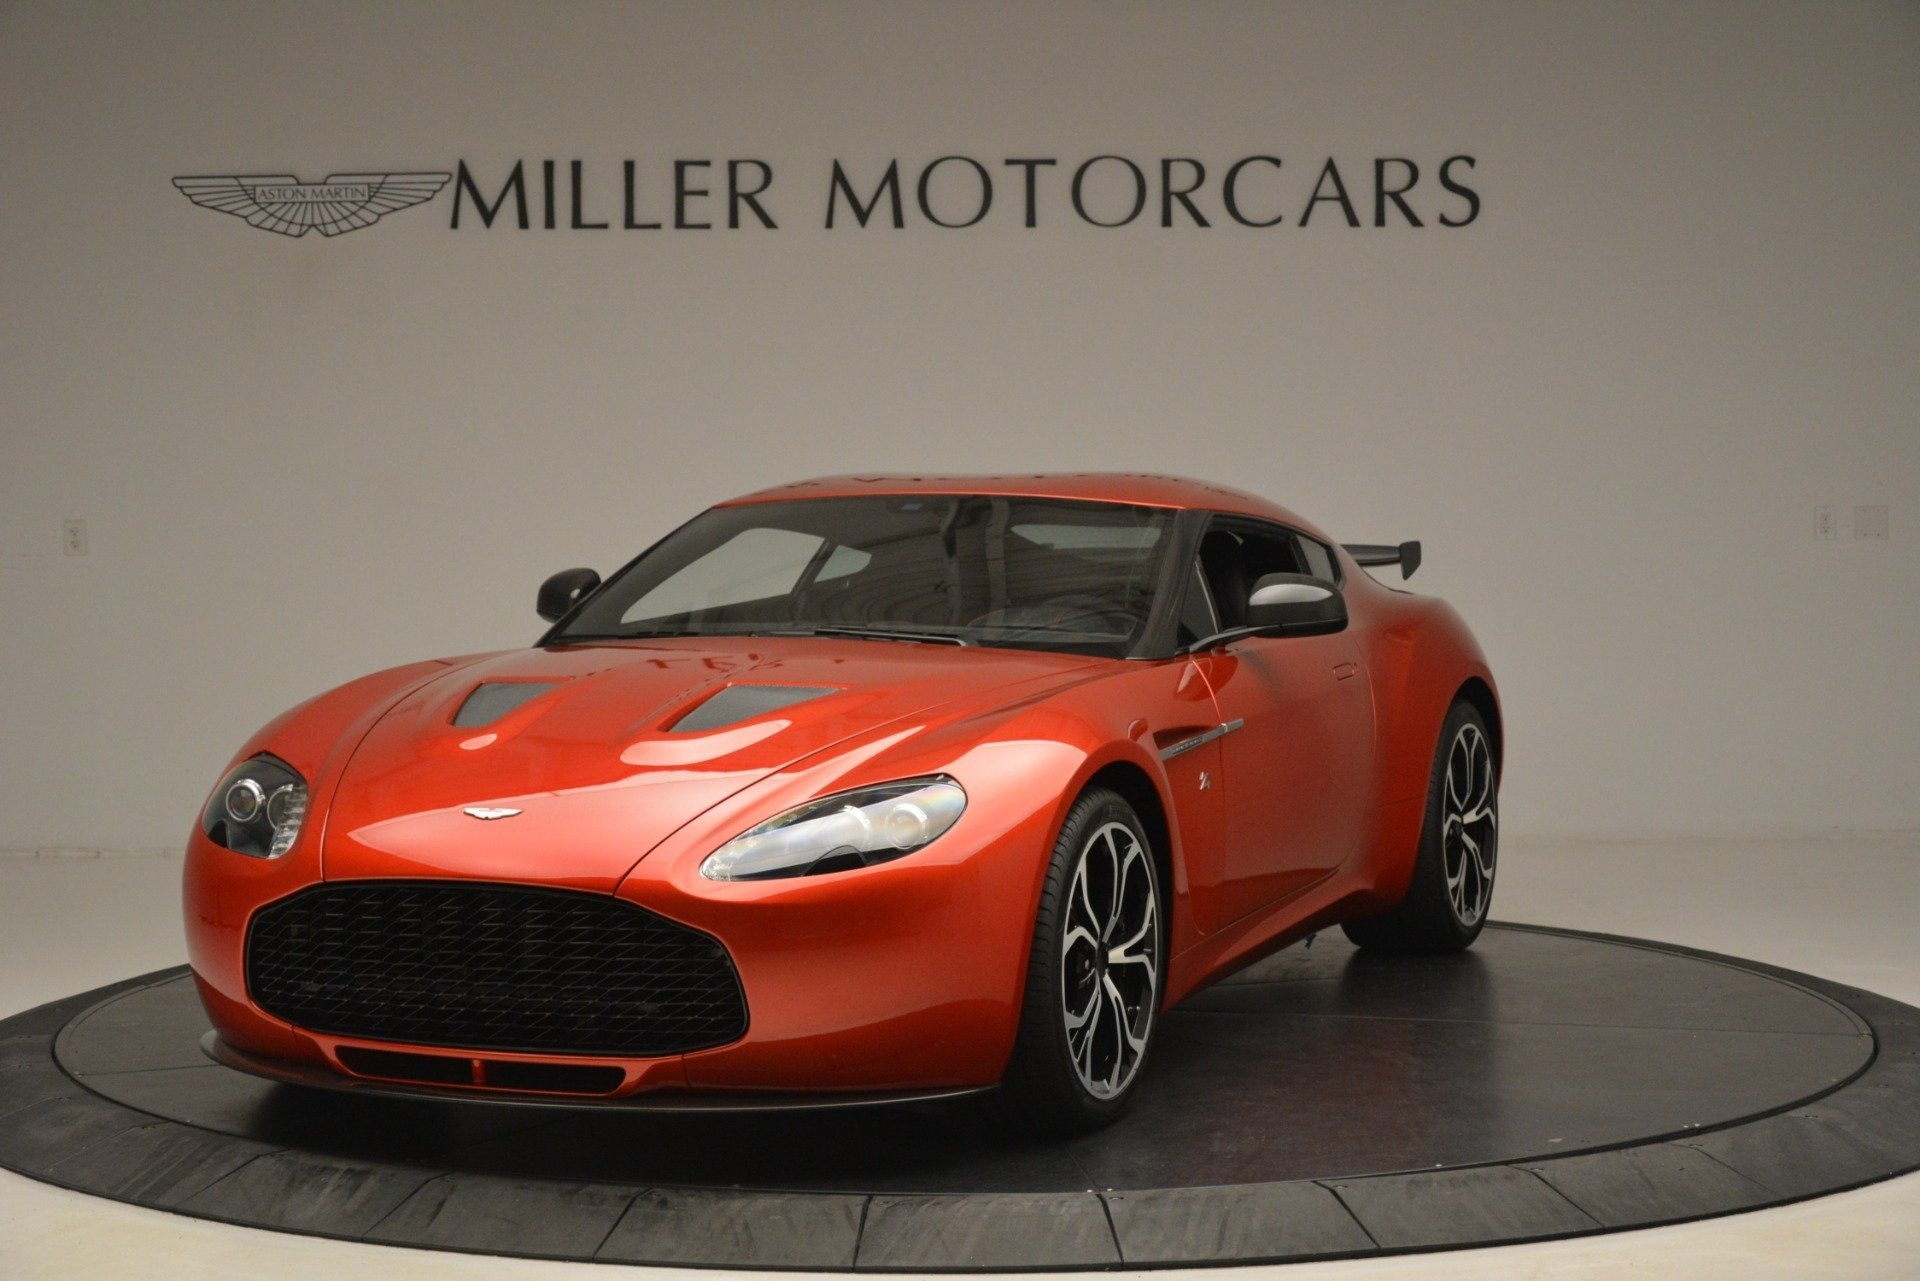 Used 2013 Aston Martin V12 Zagato Coupe For Sale 819900 In Greenwich, CT